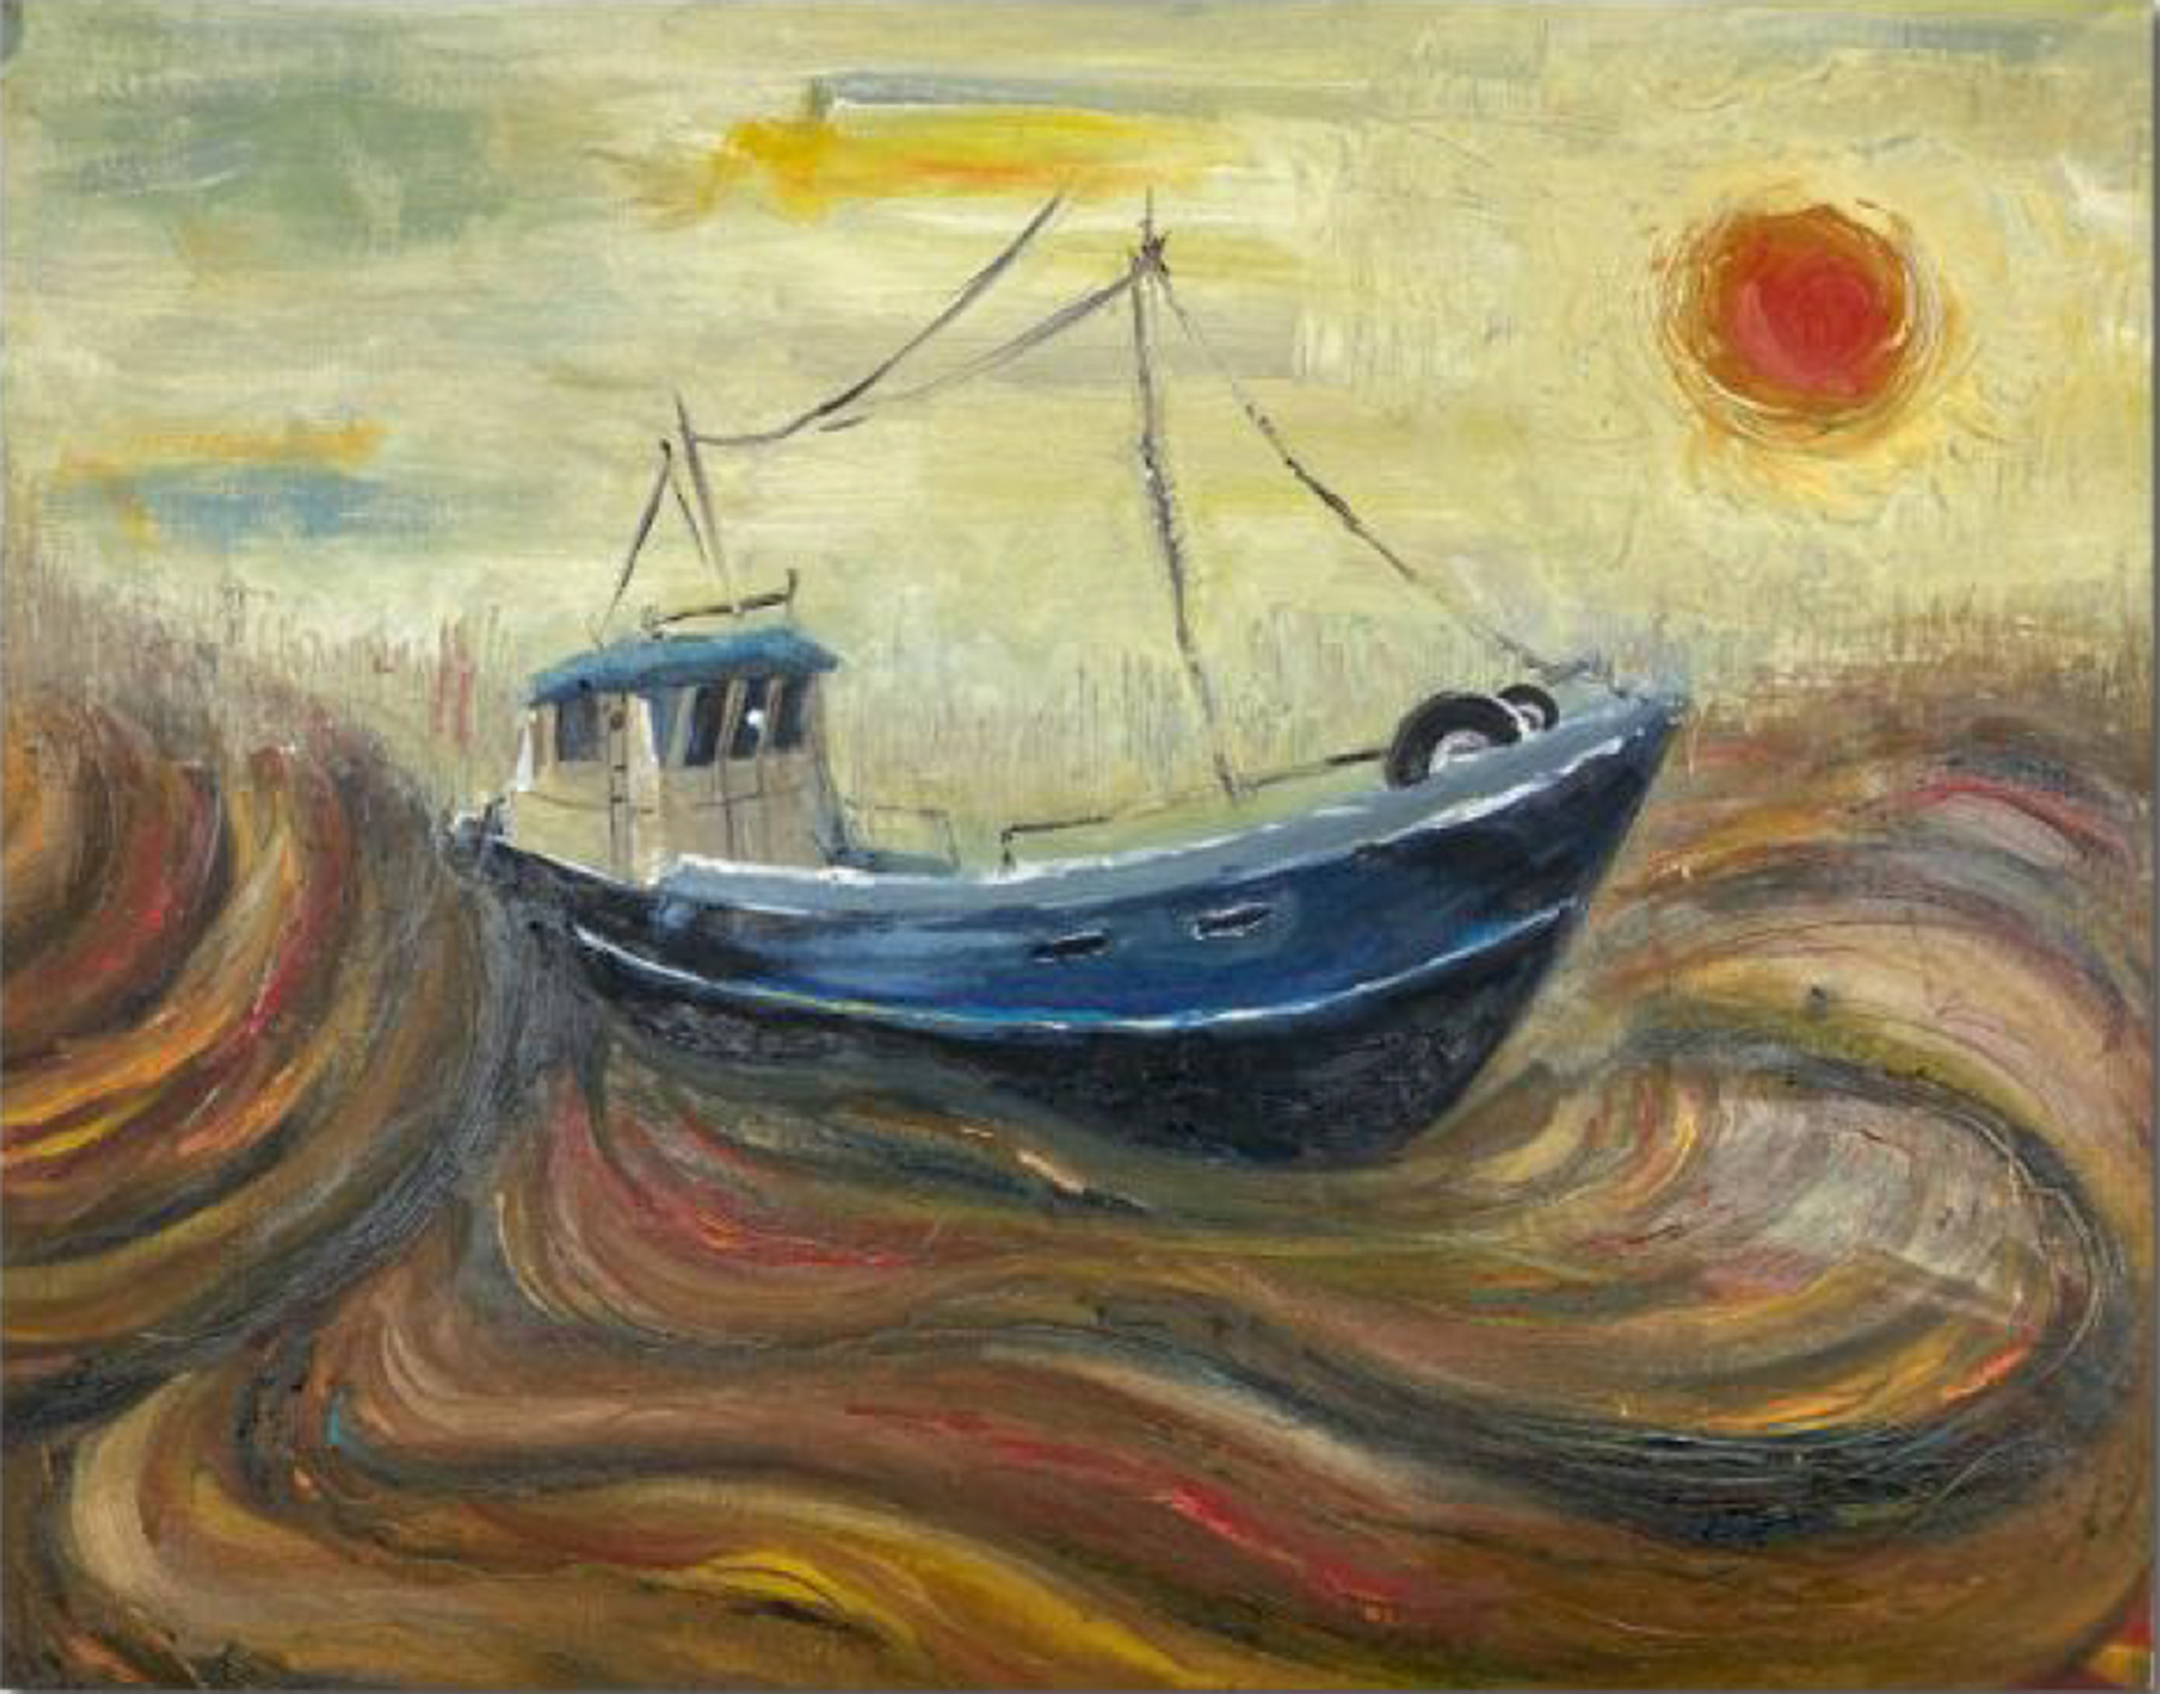 Painting in the style of Vincent Van Gogh of a boat on brown and orange water with the orange sun setting